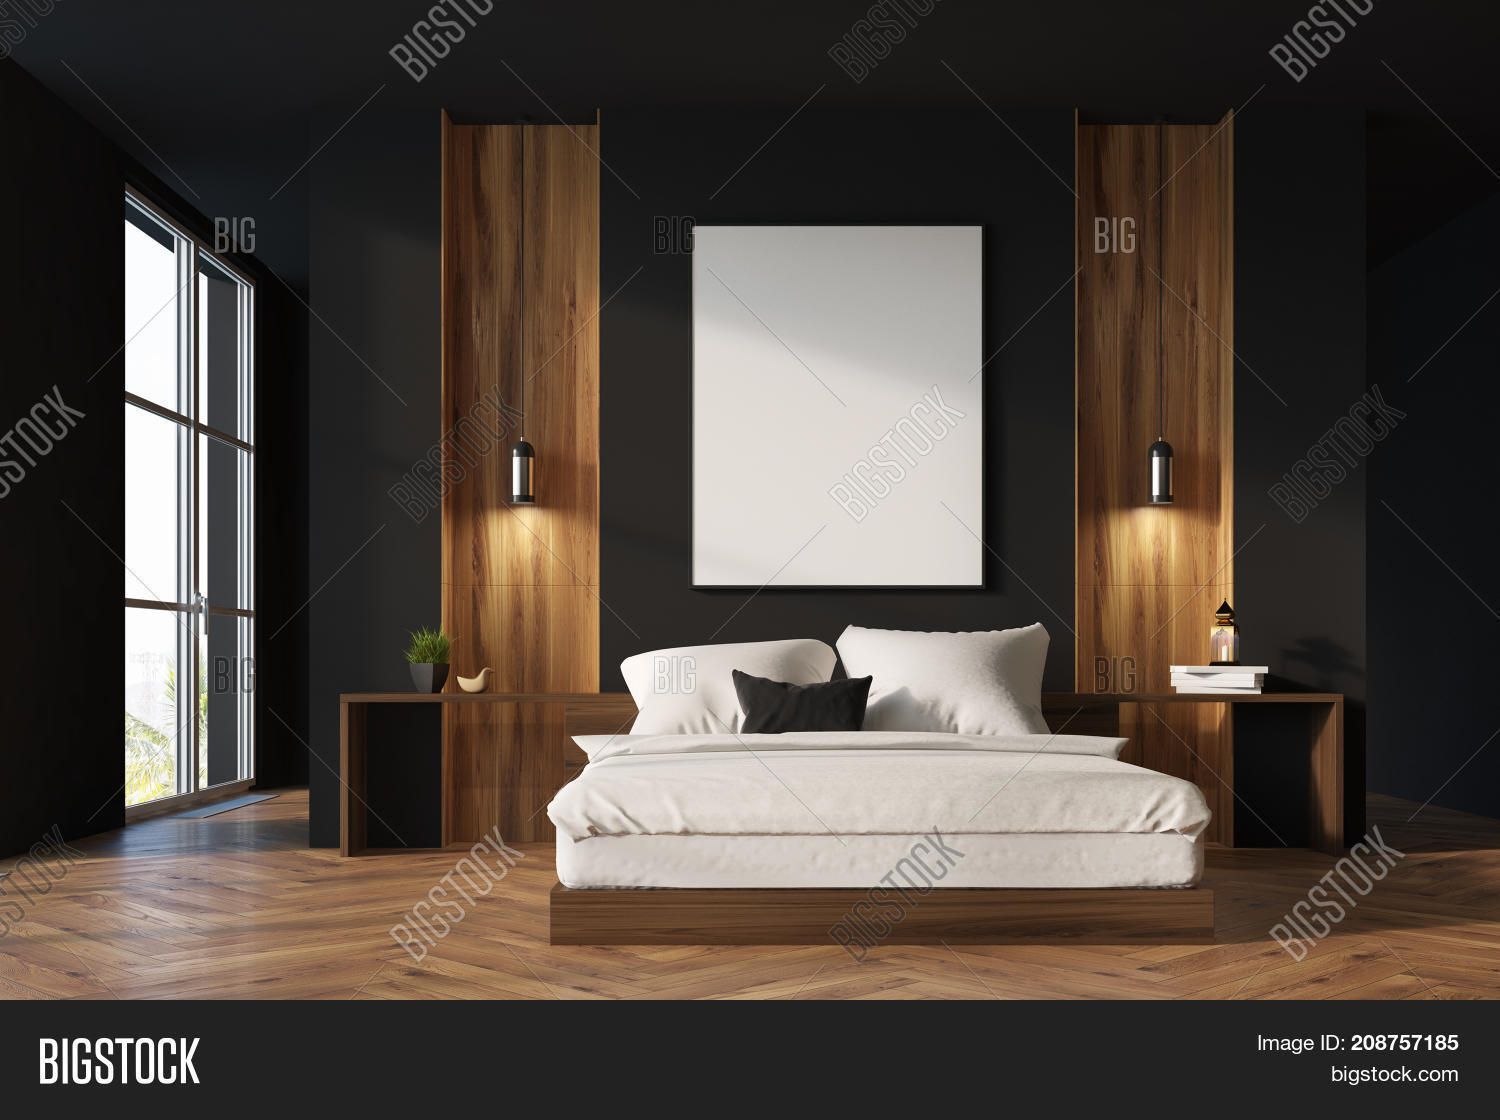 Black Wooden Bedroom Image Photo Free Trial Bigstock